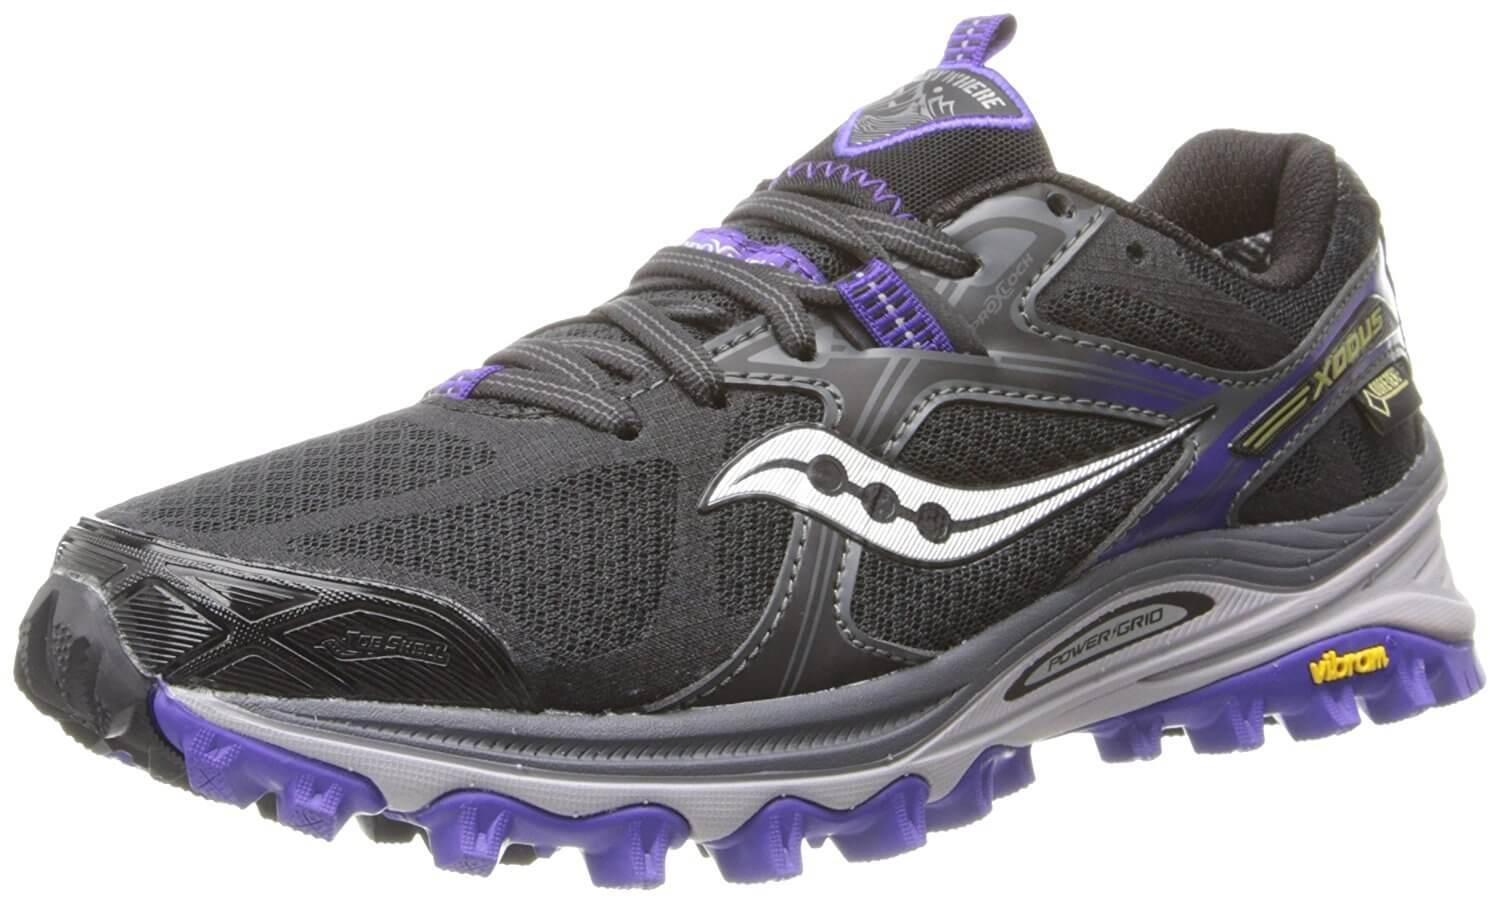 Men's Saucony Xodus 6.0 GTX Running Shoes Availability: Out of stock $140.00 See Price in Cart